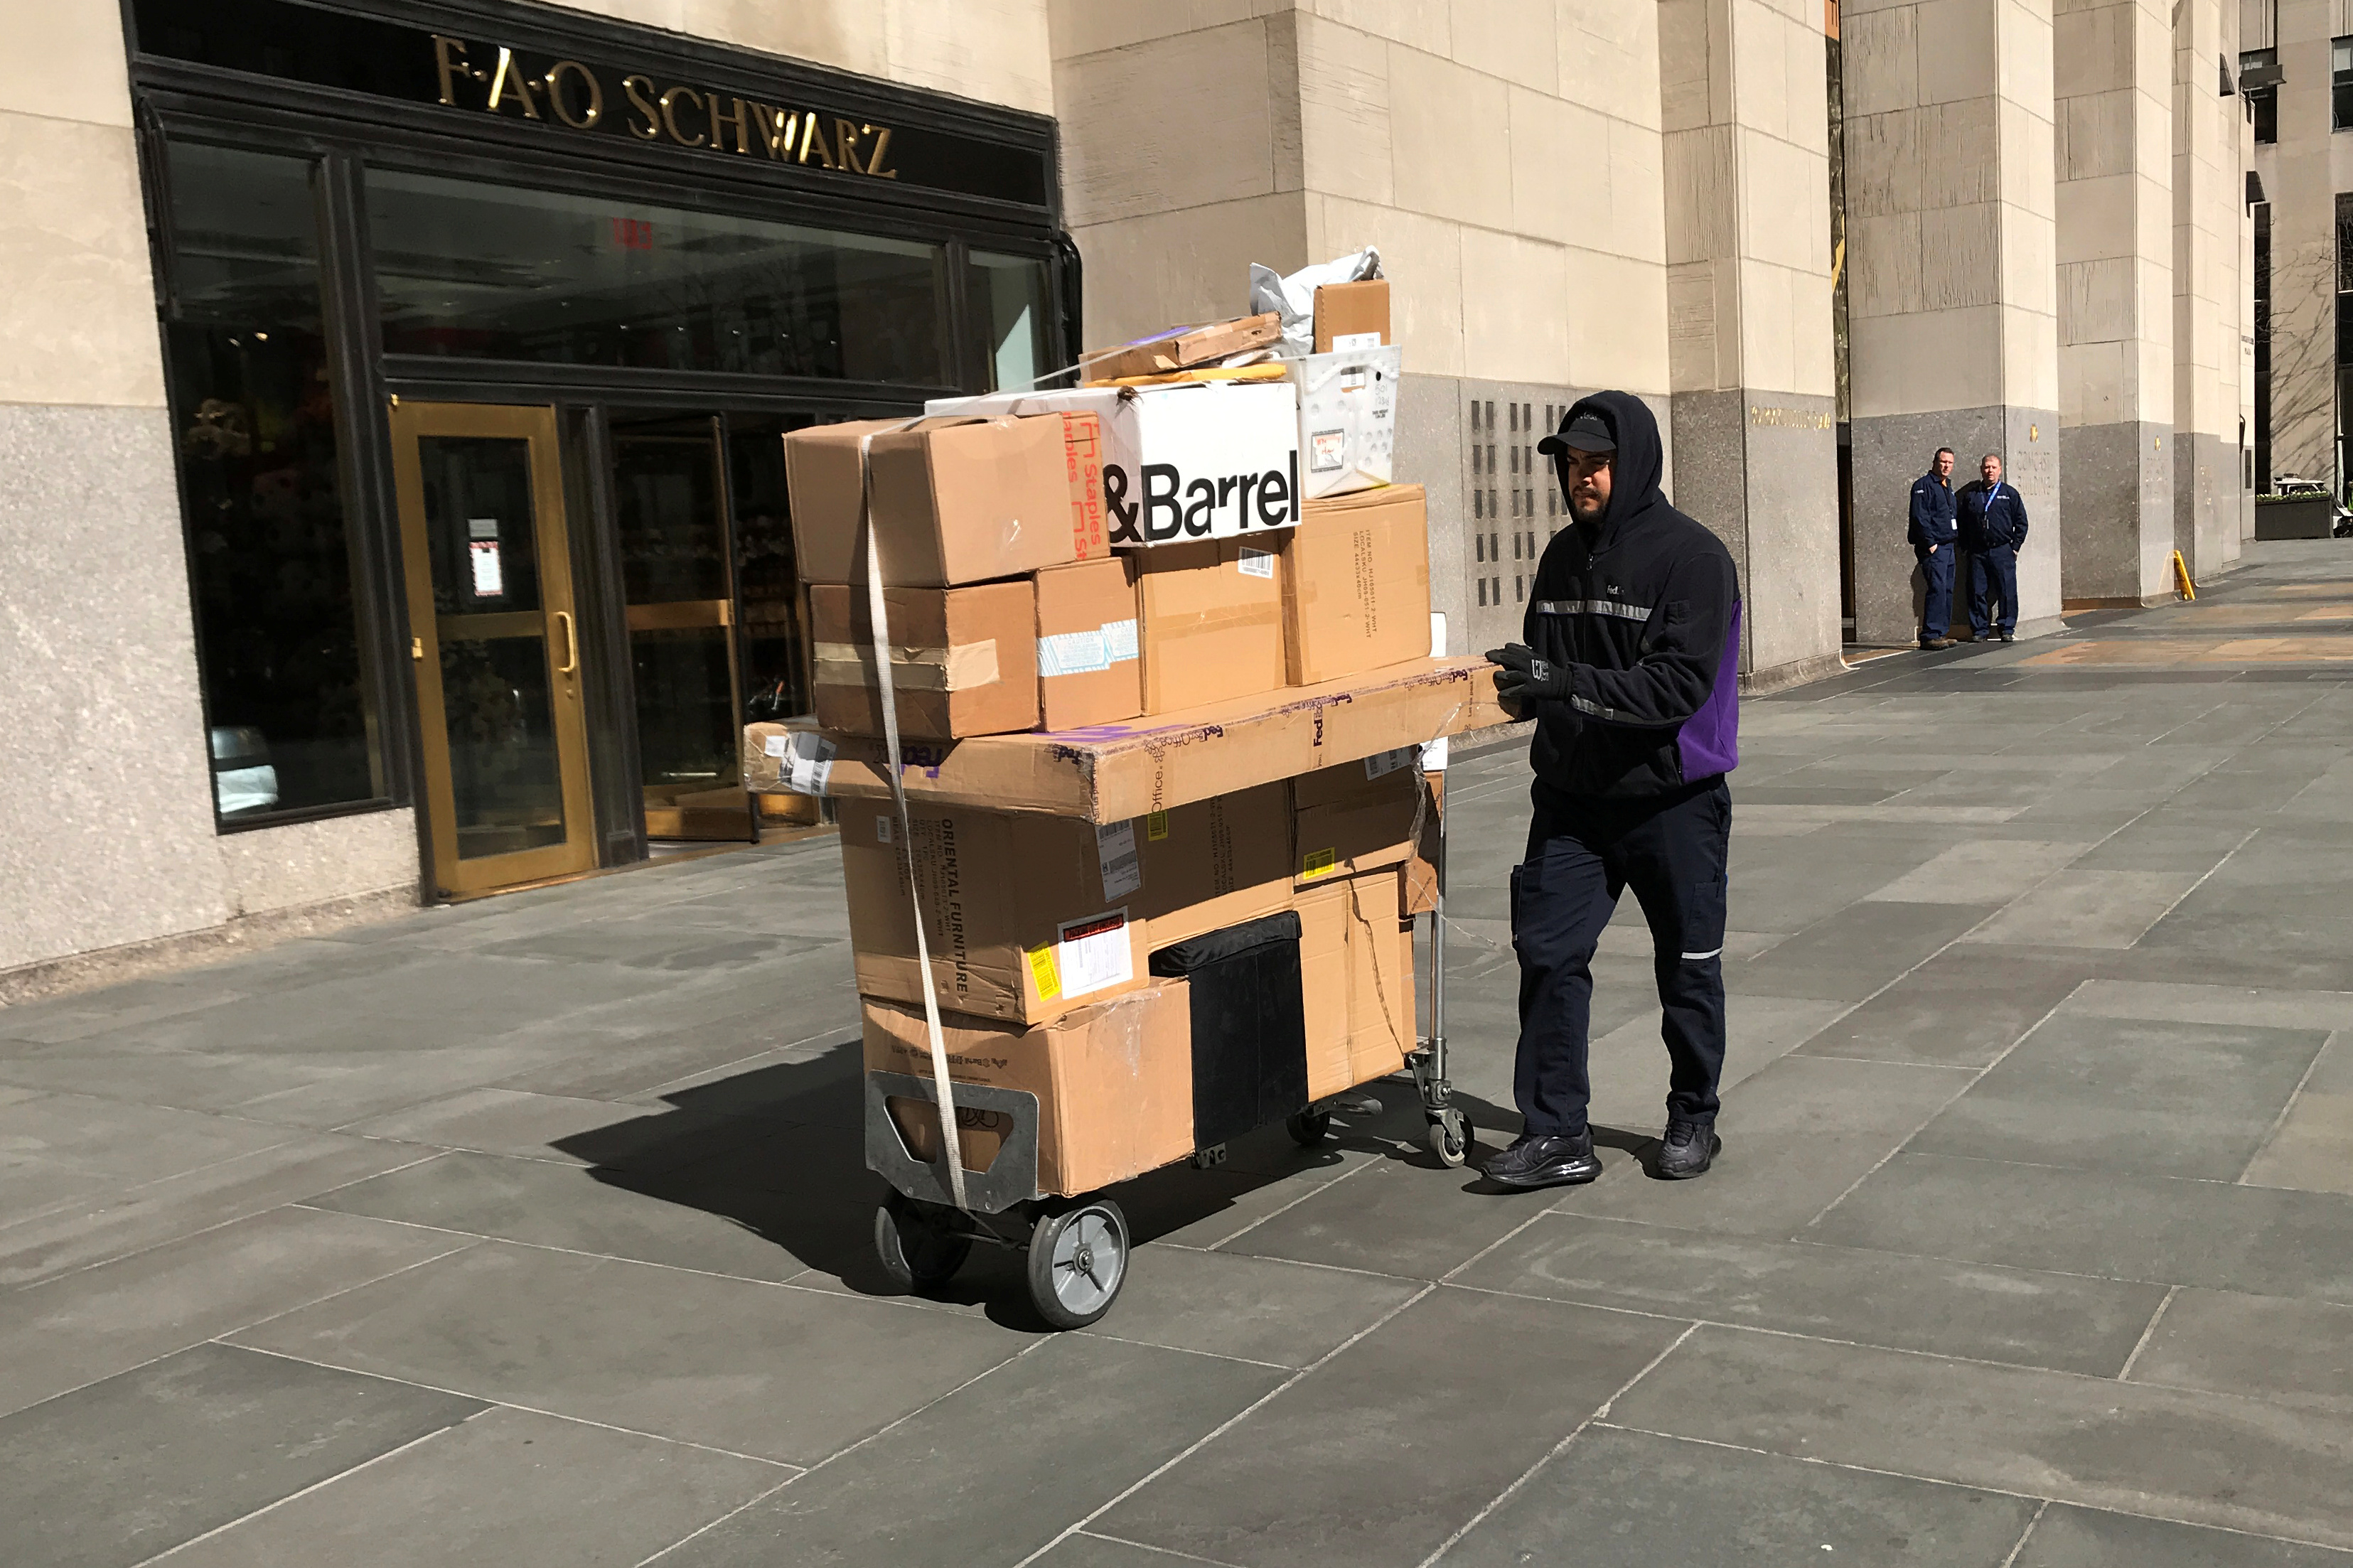 A worker delivers packages following the outbreak of coronavirus disease (COVID-19), in the Manhattan borough of New York City, New York, U.S., March 16, 2020. REUTERS/Carlo Allegri